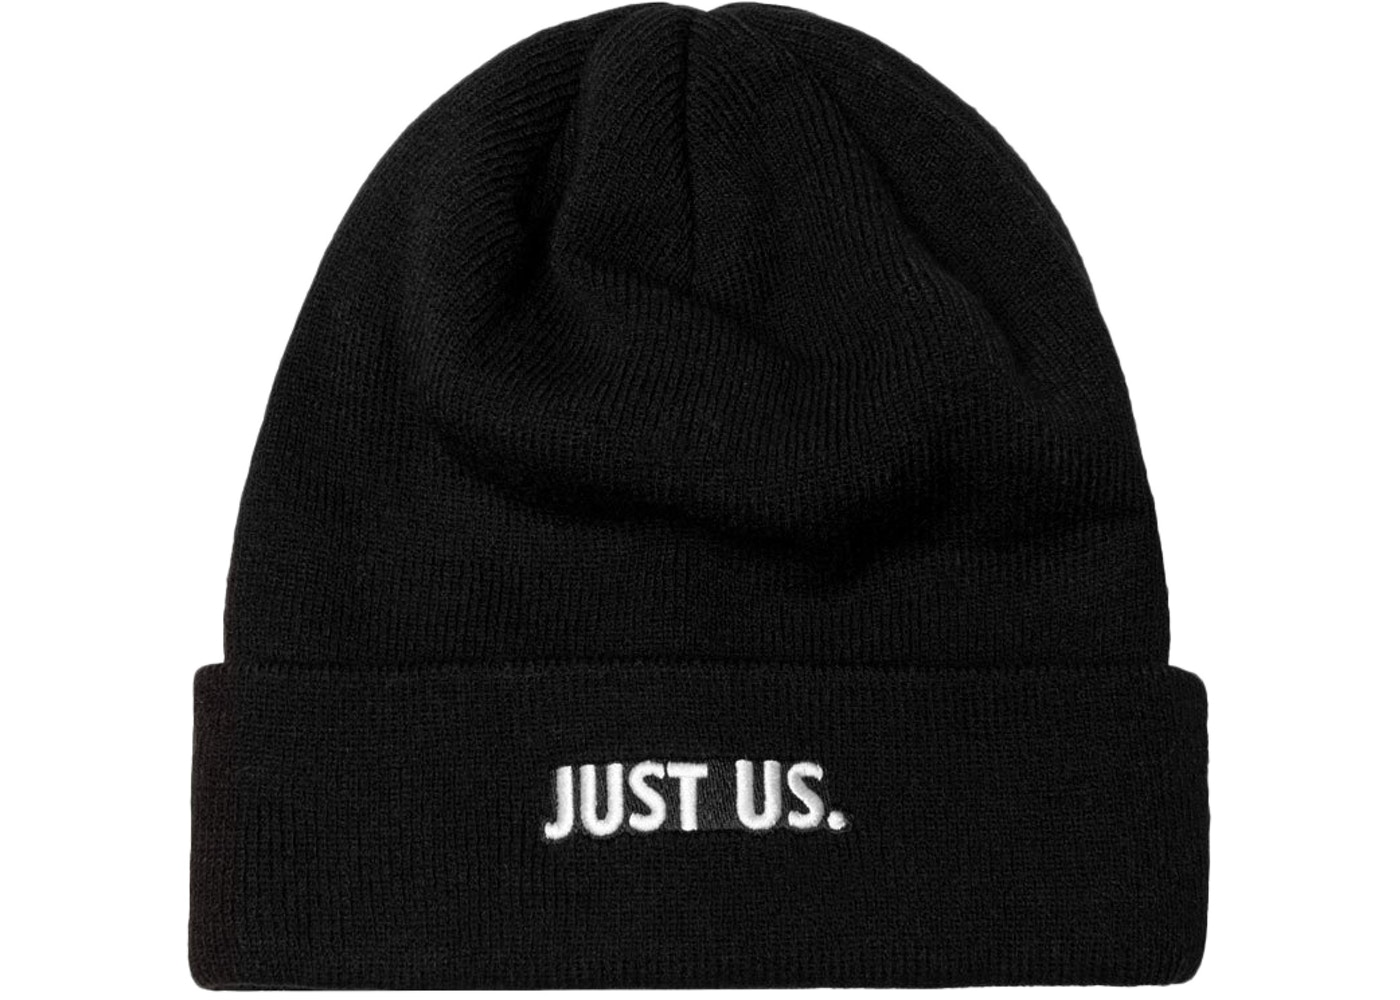 165d8a22dc9613 Kith Nike Just Us Beanie Black - FW17